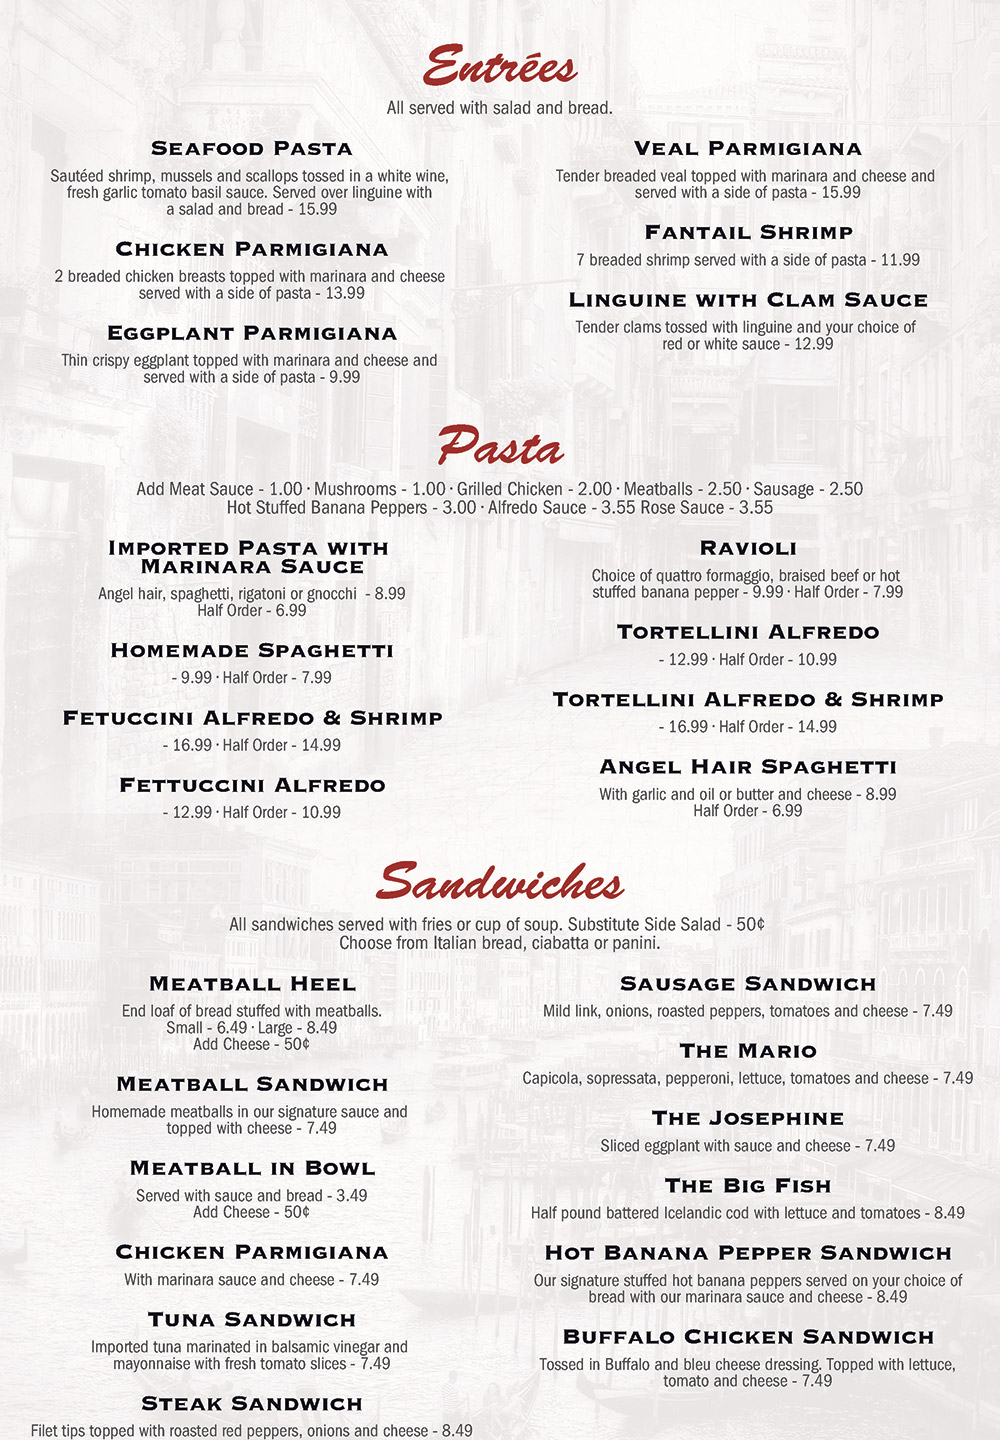 Marios Restaurant Menu 2017